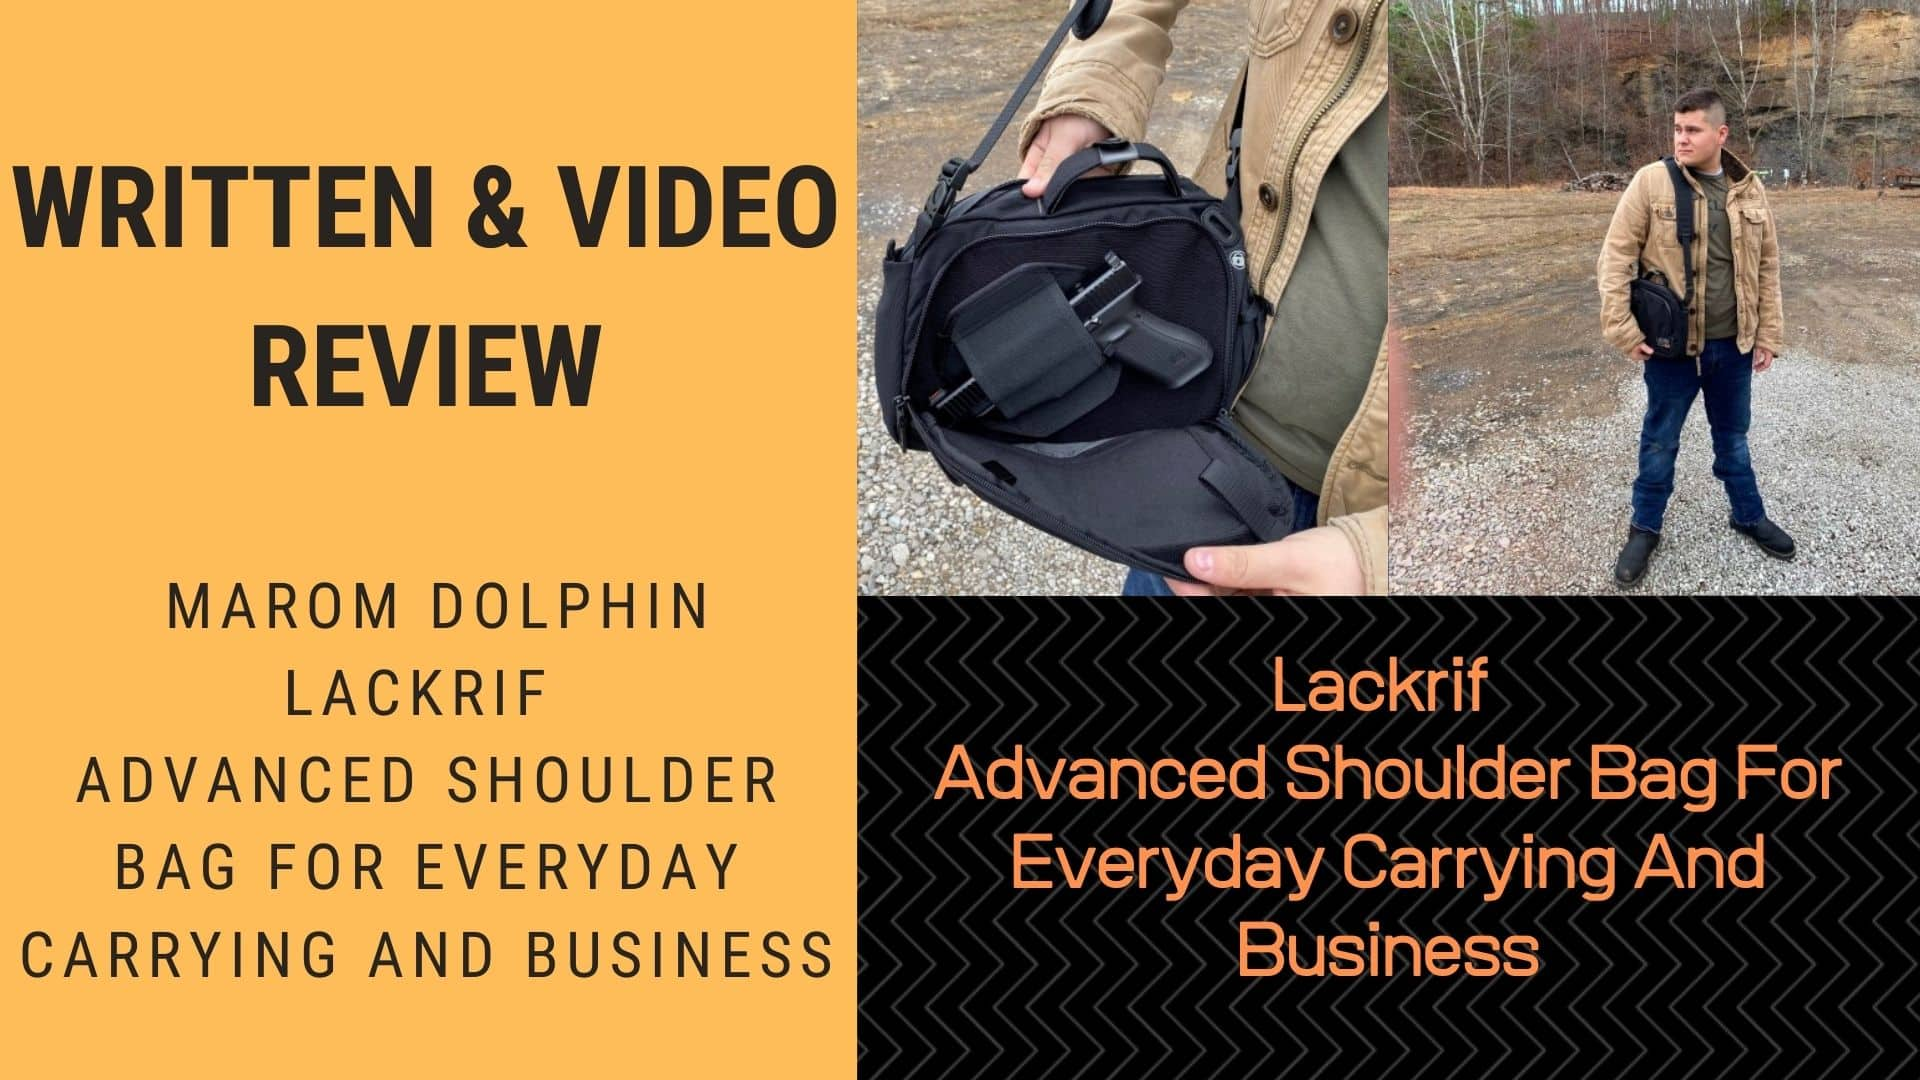 Written Video Review Lackrif Advanced Shoulder Bag For Everyday Carrying And Business